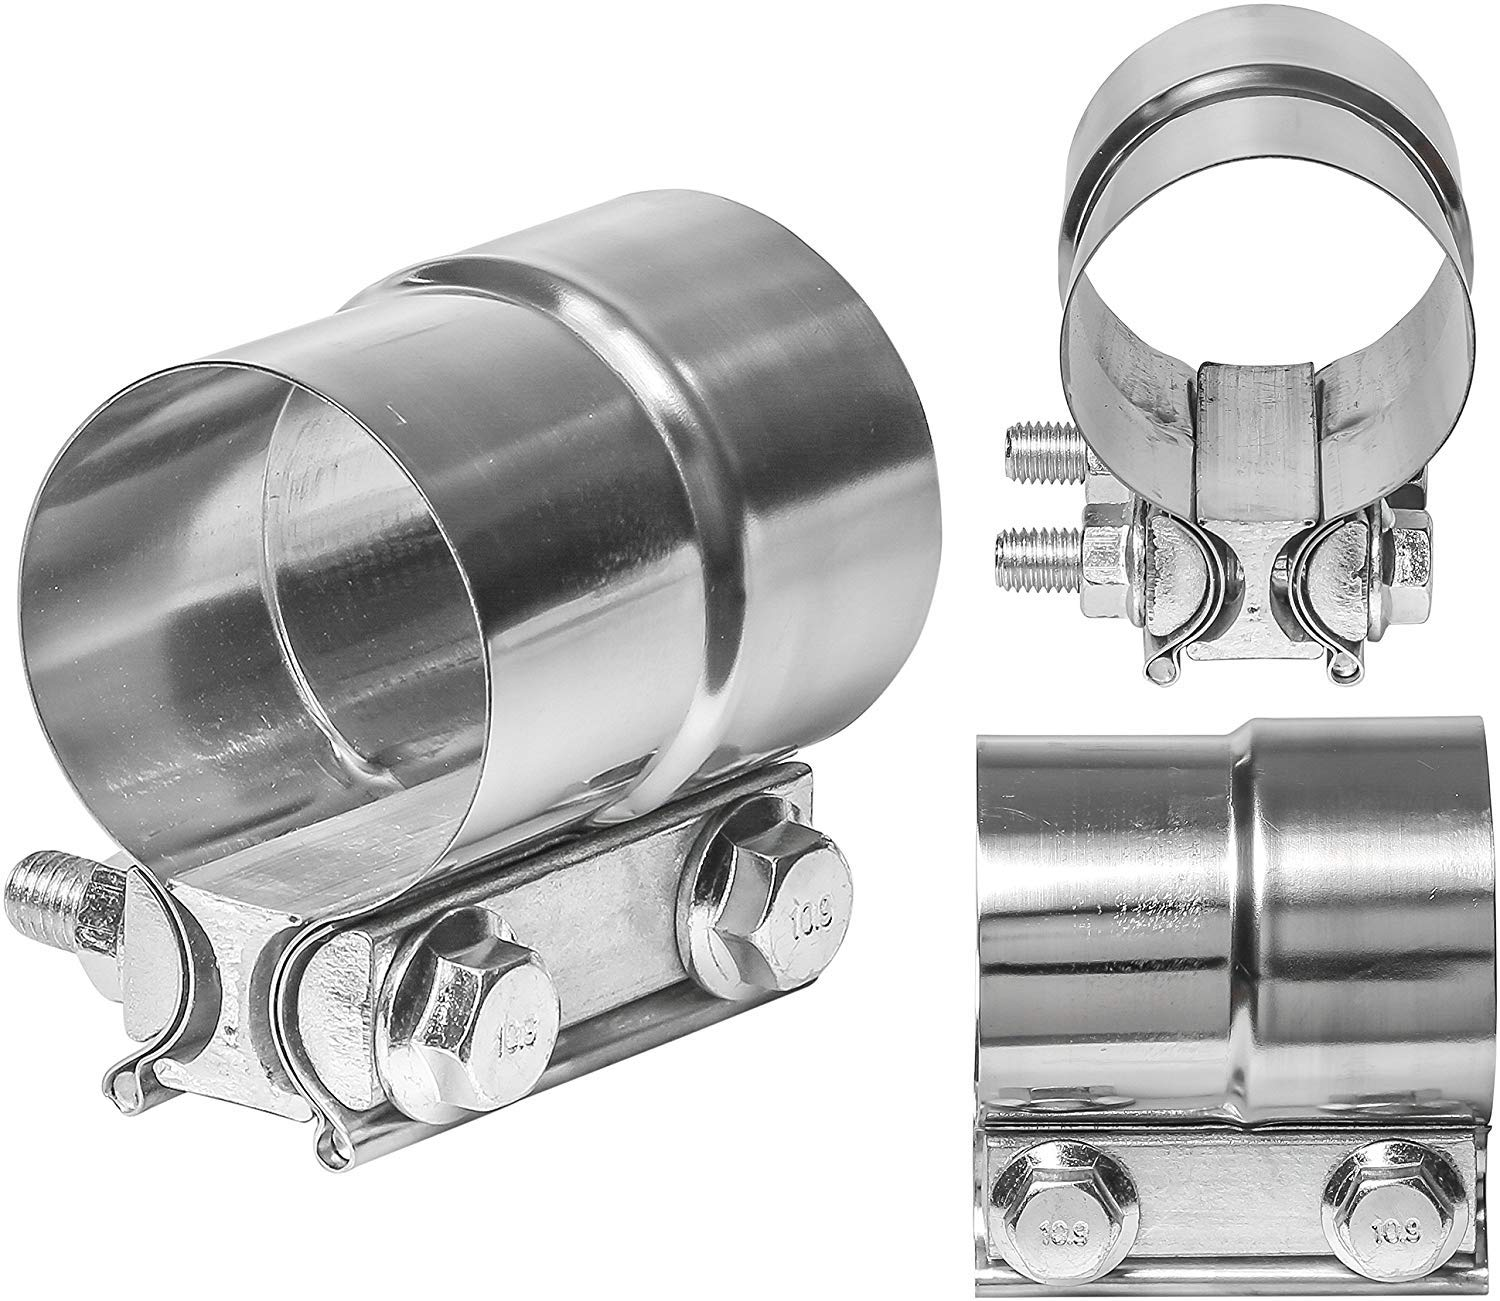 TOTALFLOW 2.75 TF-J59 304 Stainless Steel Lap Joint Exhaust Muffler Clamp Band-2.75 Inch